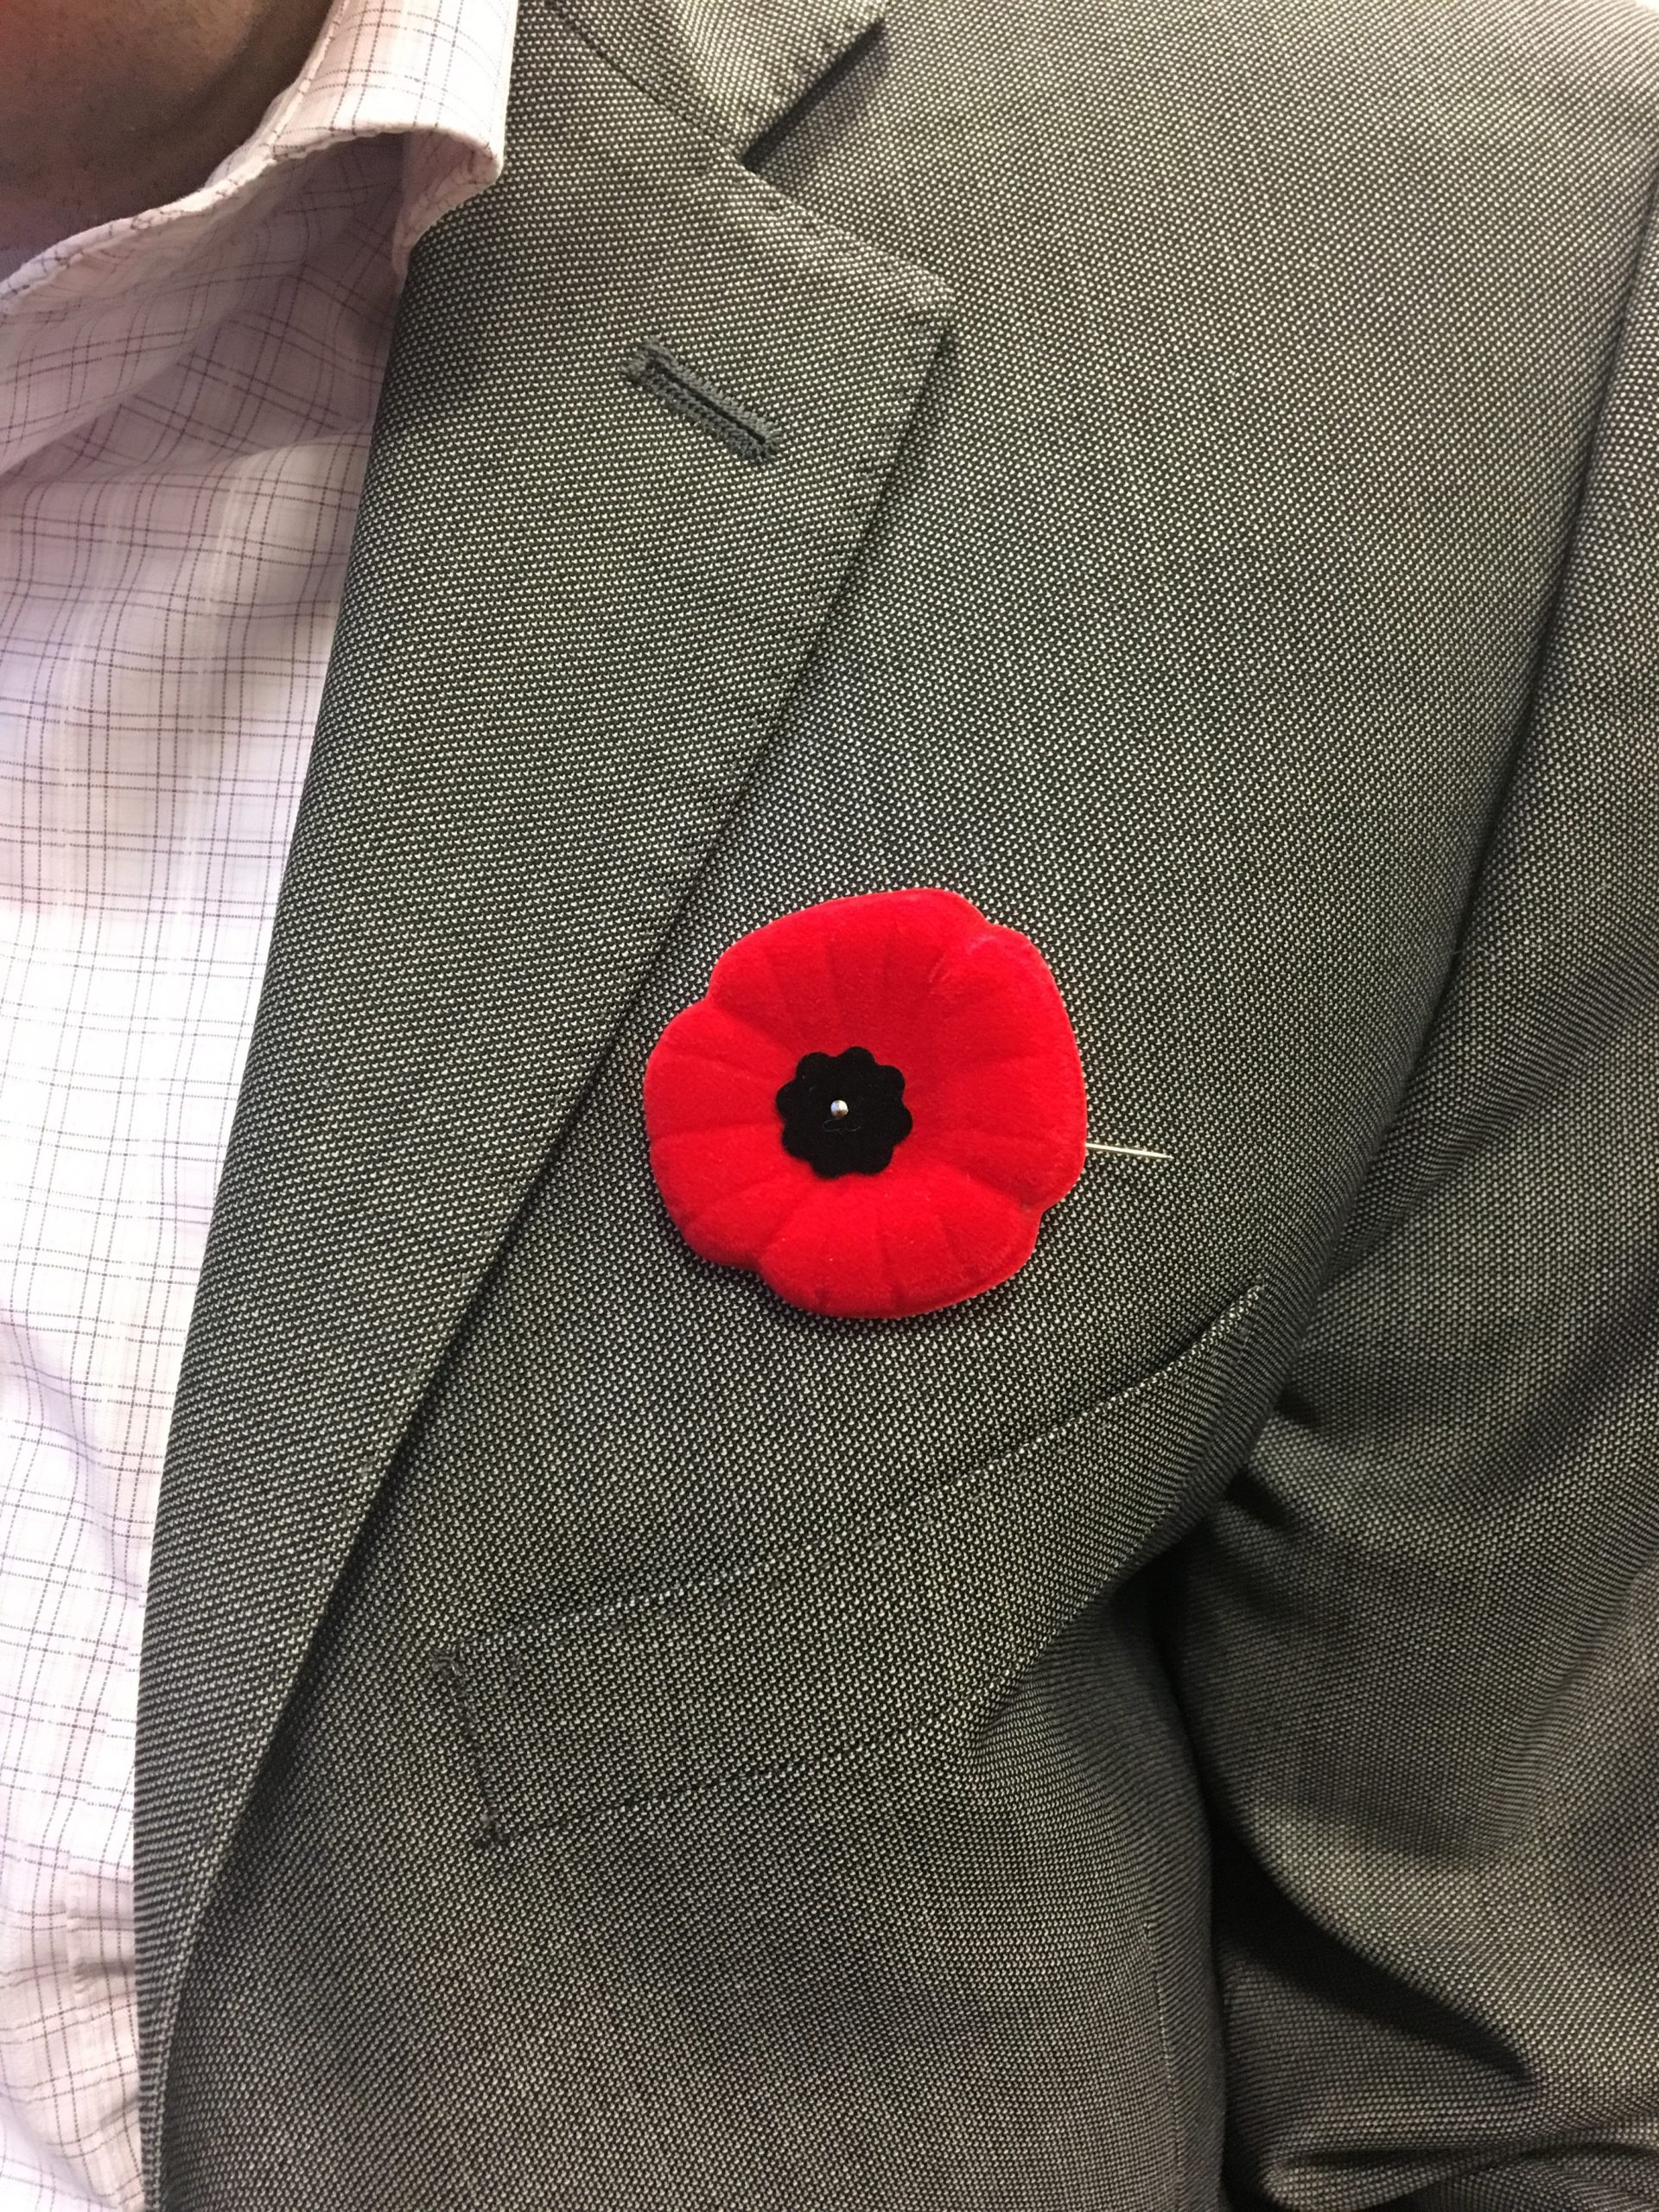 City of Calgary : Remembrance Day 2017